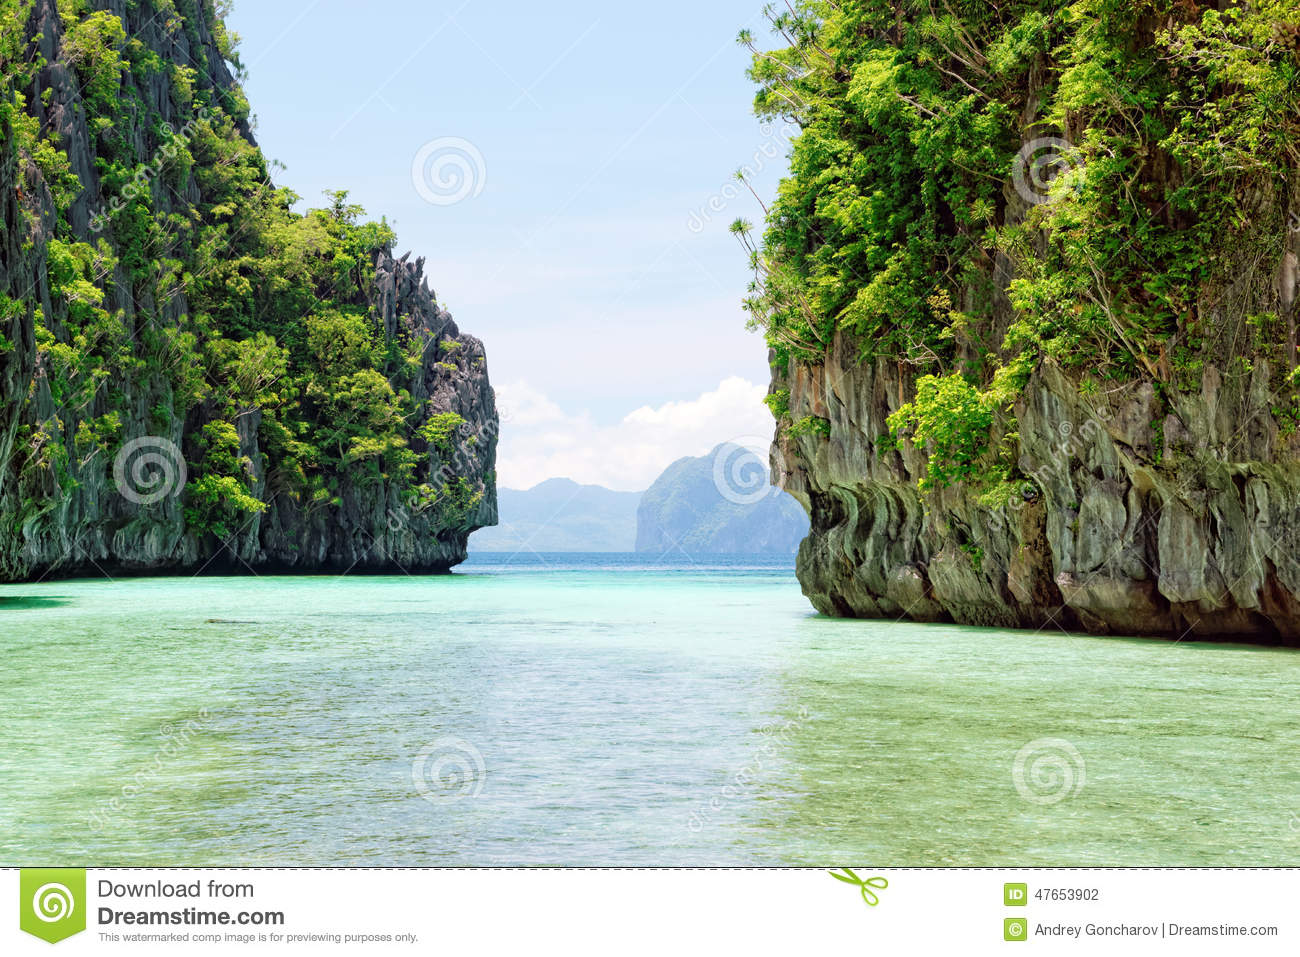 el nido hindu single men Book the dormitels el nido now and collect 1 free night for every 10 you book with hotelscom™ rewards unlock secret prices too and save up to 50%.